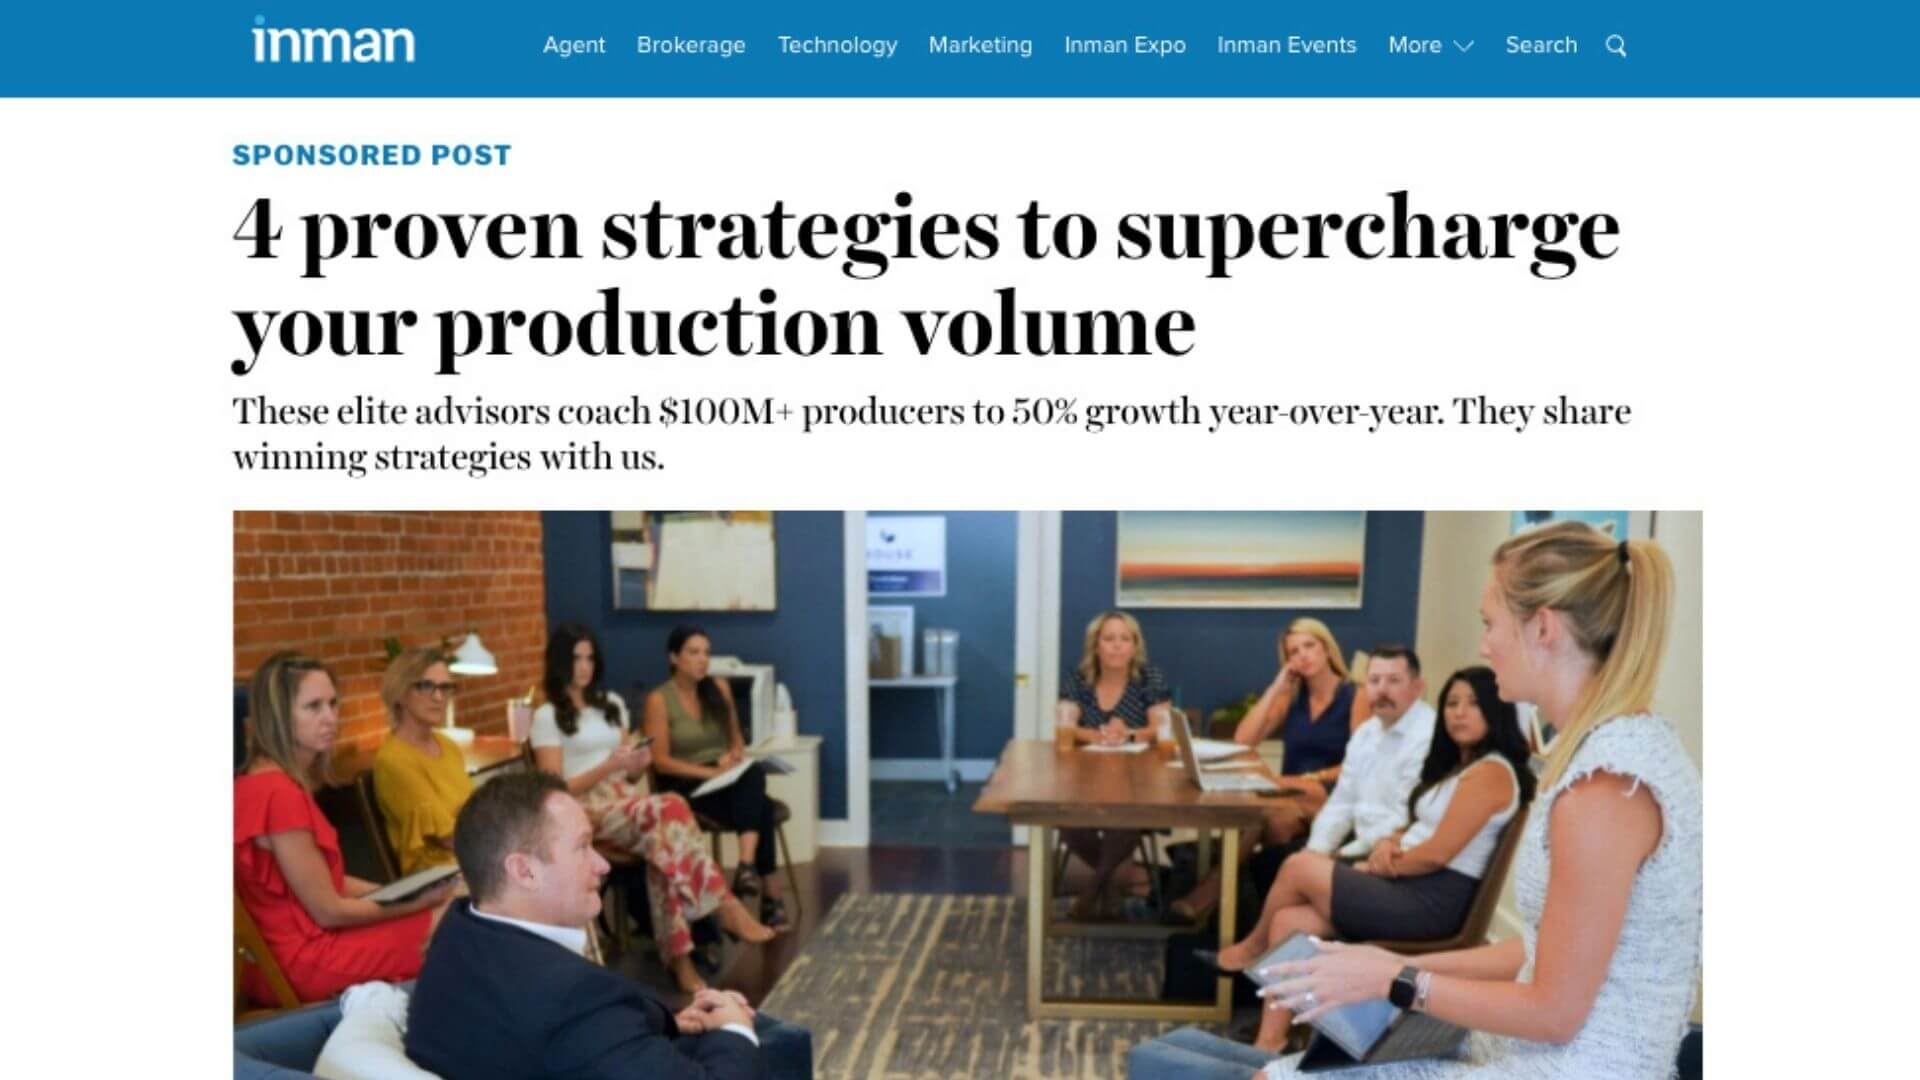 4 proven strategies to supercharge your production volume